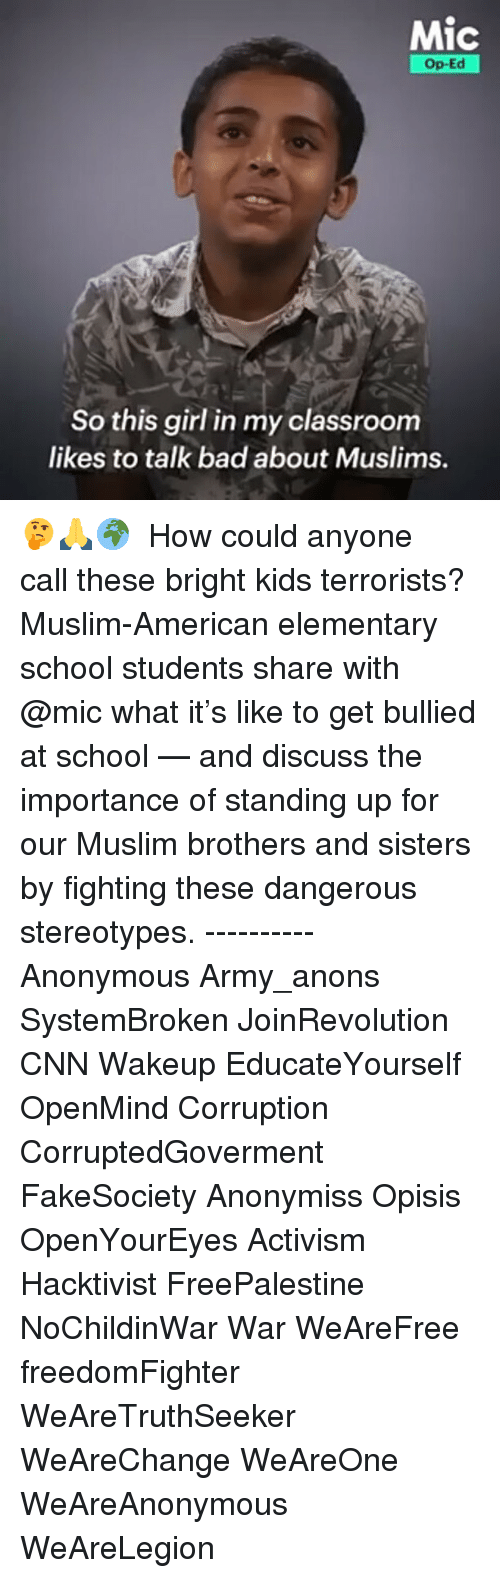 Muslim American: Mic  Op-Ed  So this girl in my classroom  likes to talk bad about Muslims. 🤔🙏🌍 ・・・ How could anyone call these bright kids terrorists? Muslim-American elementary school students share with @mic what it's like to get bullied at school — and discuss the importance of standing up for our Muslim brothers and sisters by fighting these dangerous stereotypes. ---------- Anonymous Army_anons SystemBroken JoinRevolution CNN Wakeup EducateYourself OpenMind Corruption CorruptedGoverment FakeSociety Anonymiss Opisis OpenYourEyes Activism Hacktivist FreePalestine NoChildinWar War WeAreFree freedomFighter WeAreTruthSeeker WeAreChange WeAreOne WeAreAnonymous WeAreLegion